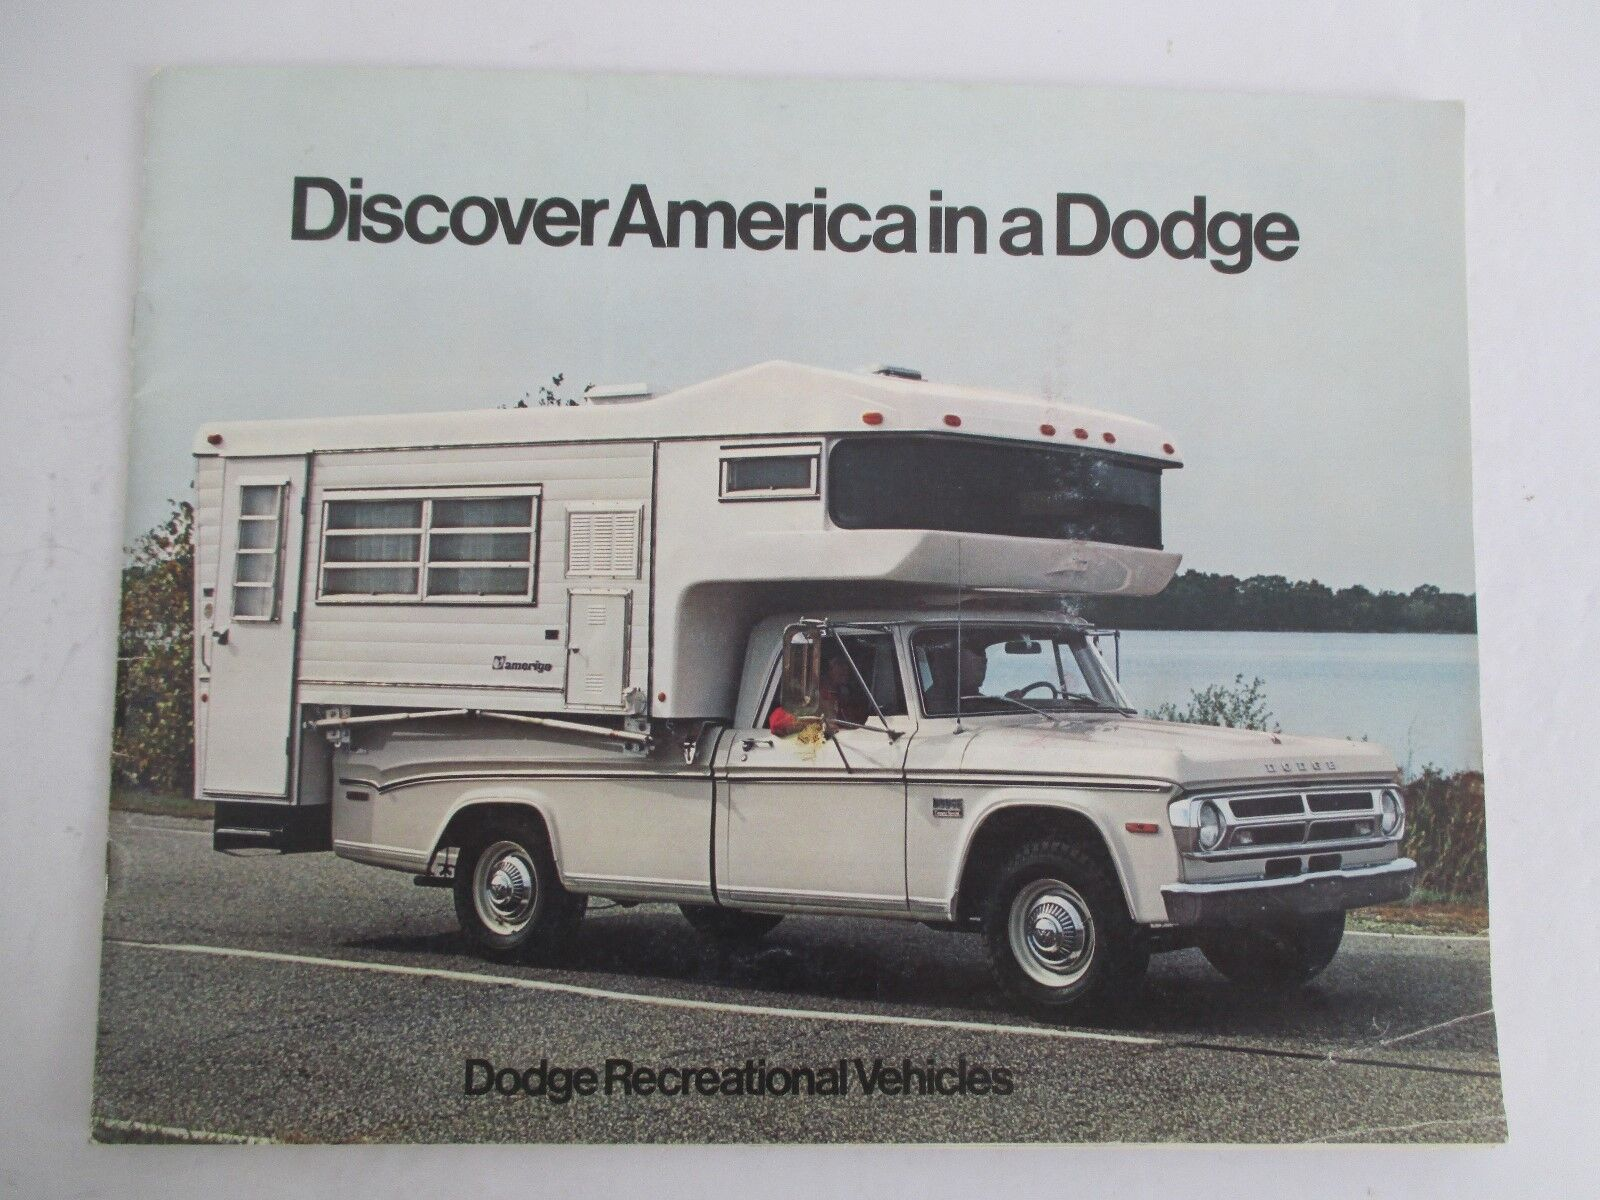 1970 DISCOVER AMERICA IN A DODGE Recreational Vehicles RV Brochure